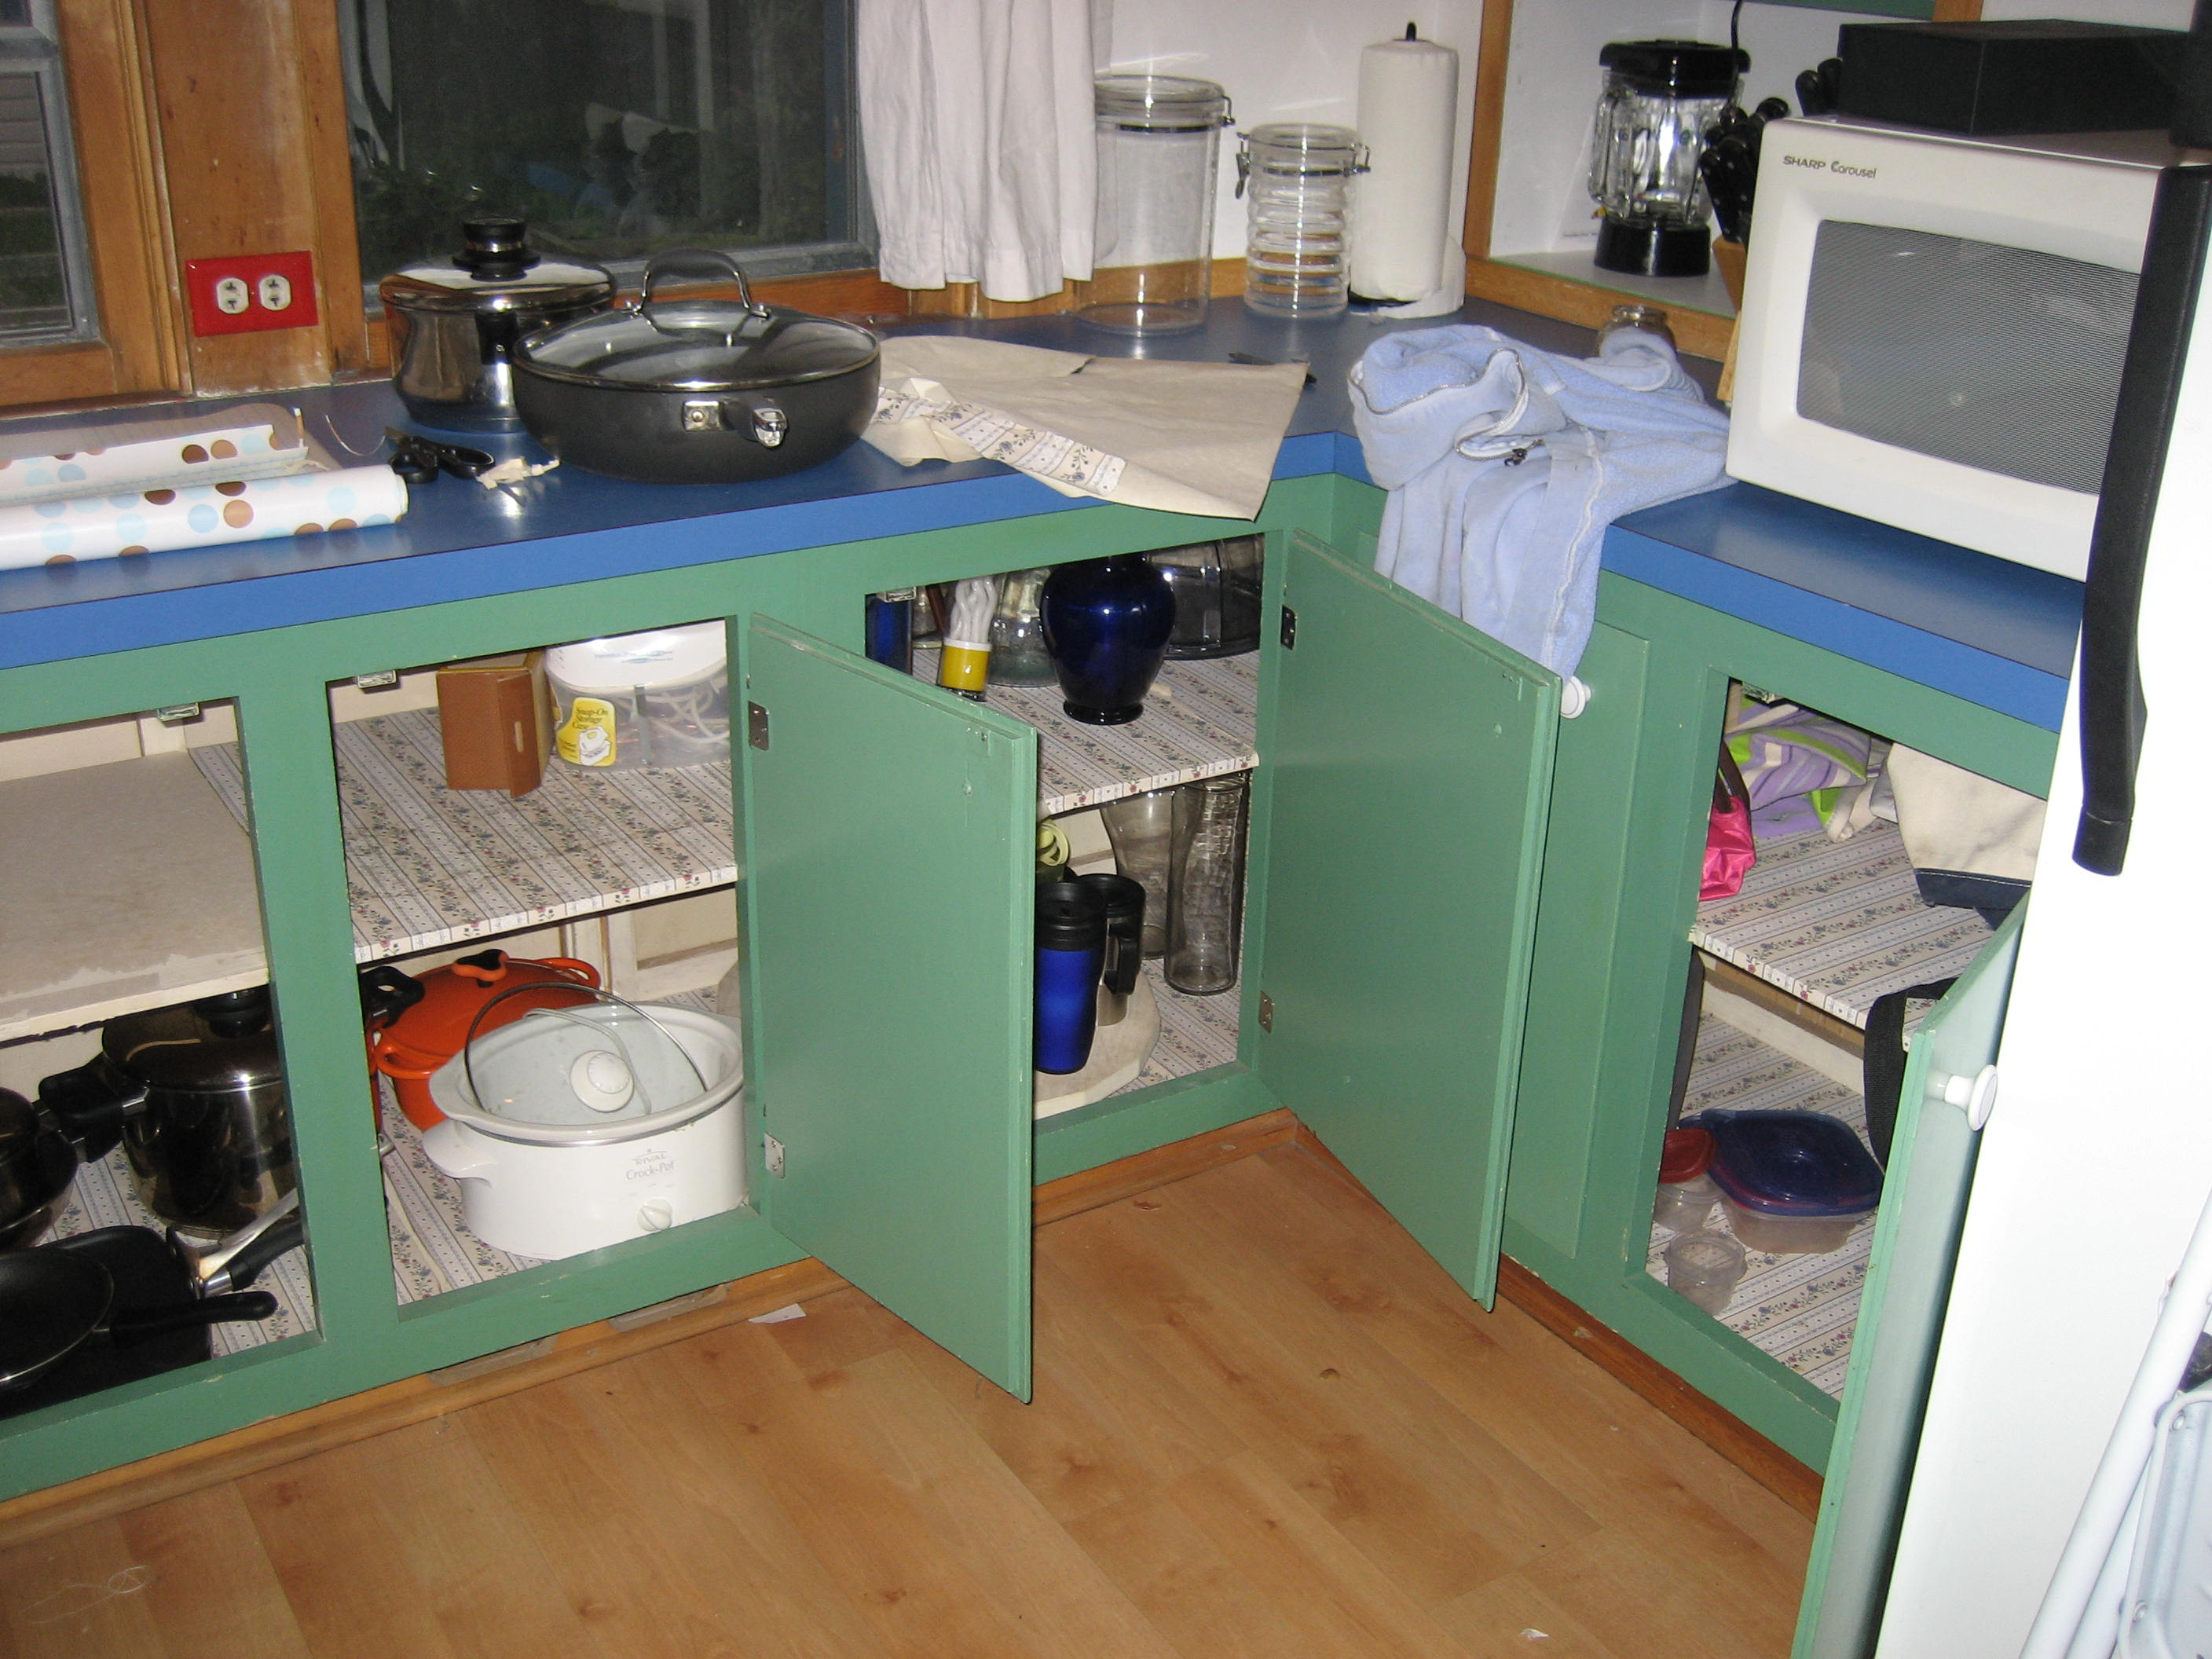 Isn't the cabinet color bad enough!?